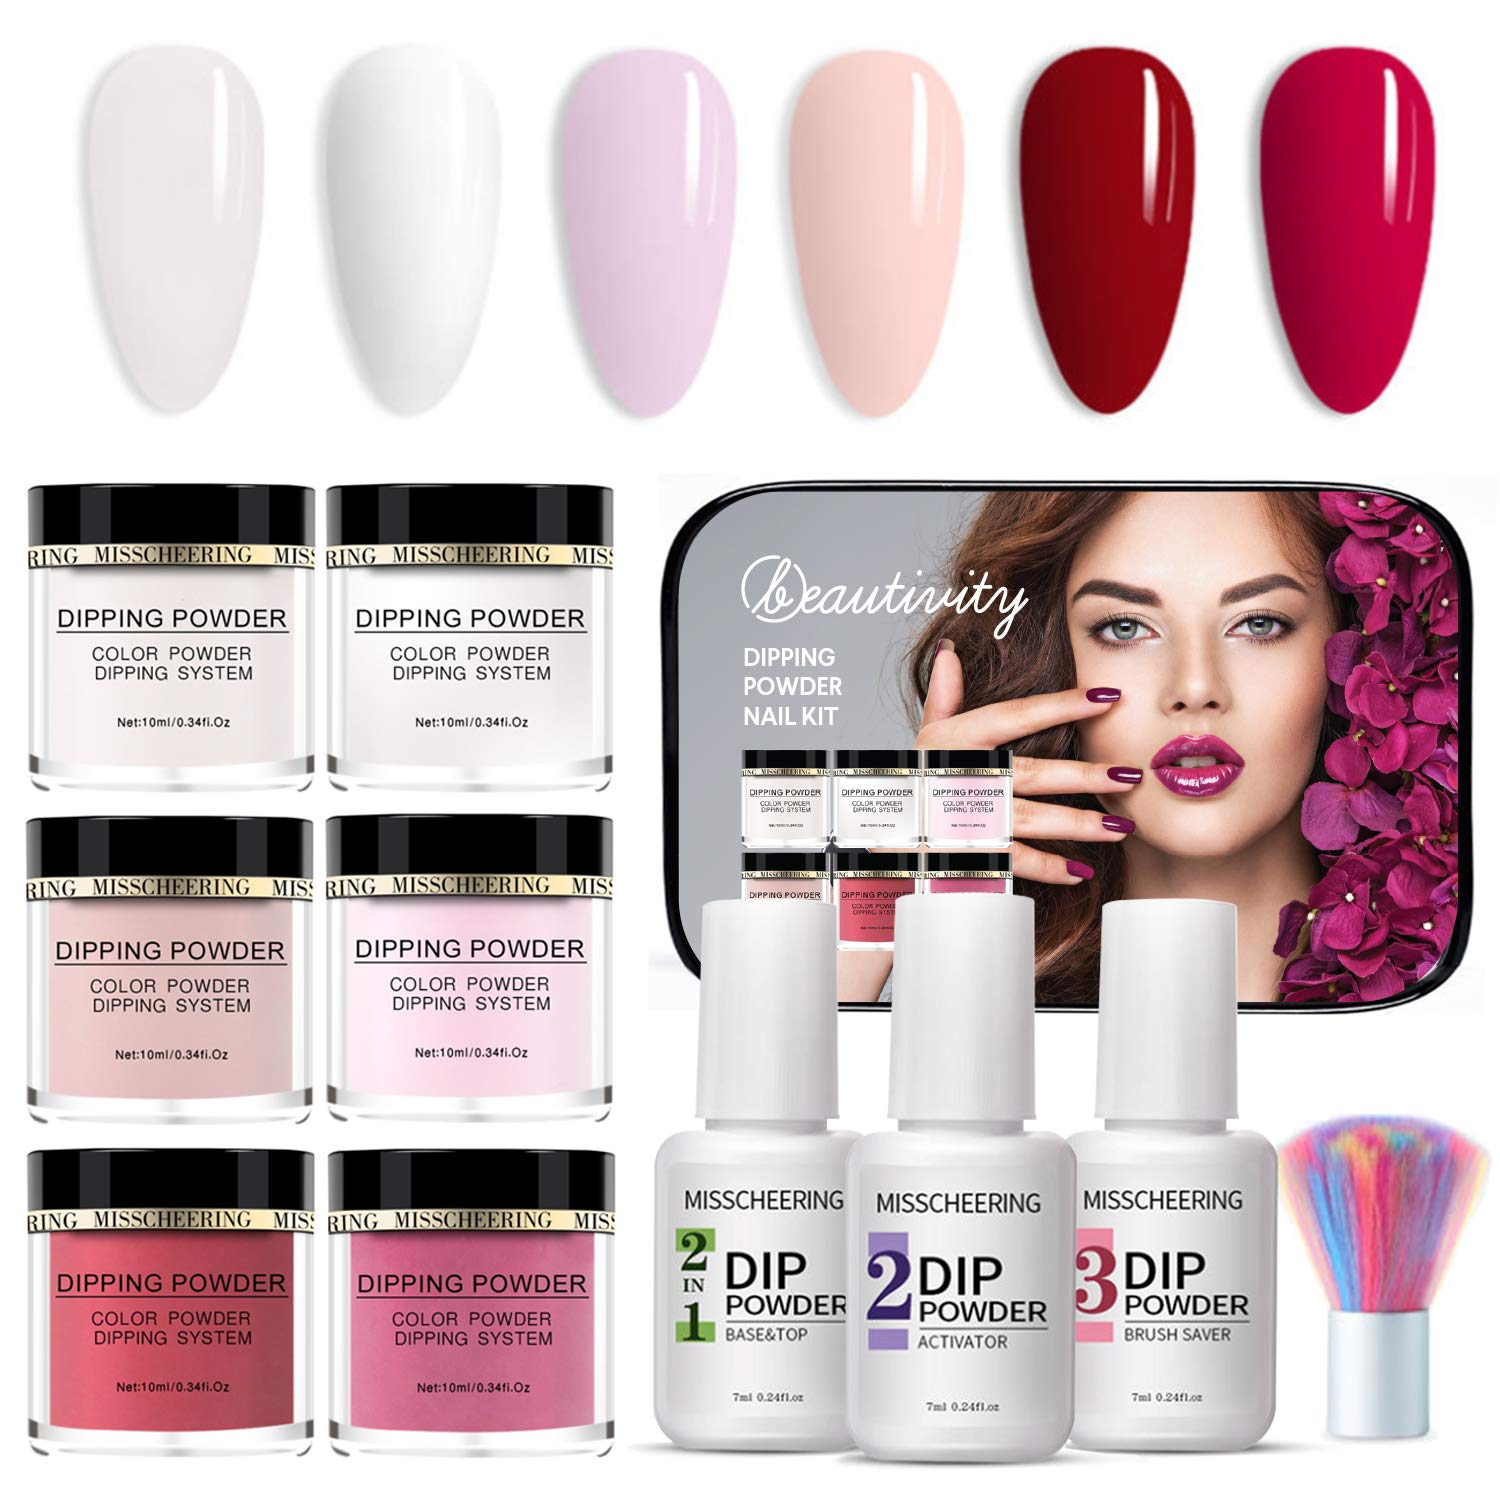 Beautivity Dipping Powder Nail Starter Kit Acrylic Dipping System (6 COLORS SET)